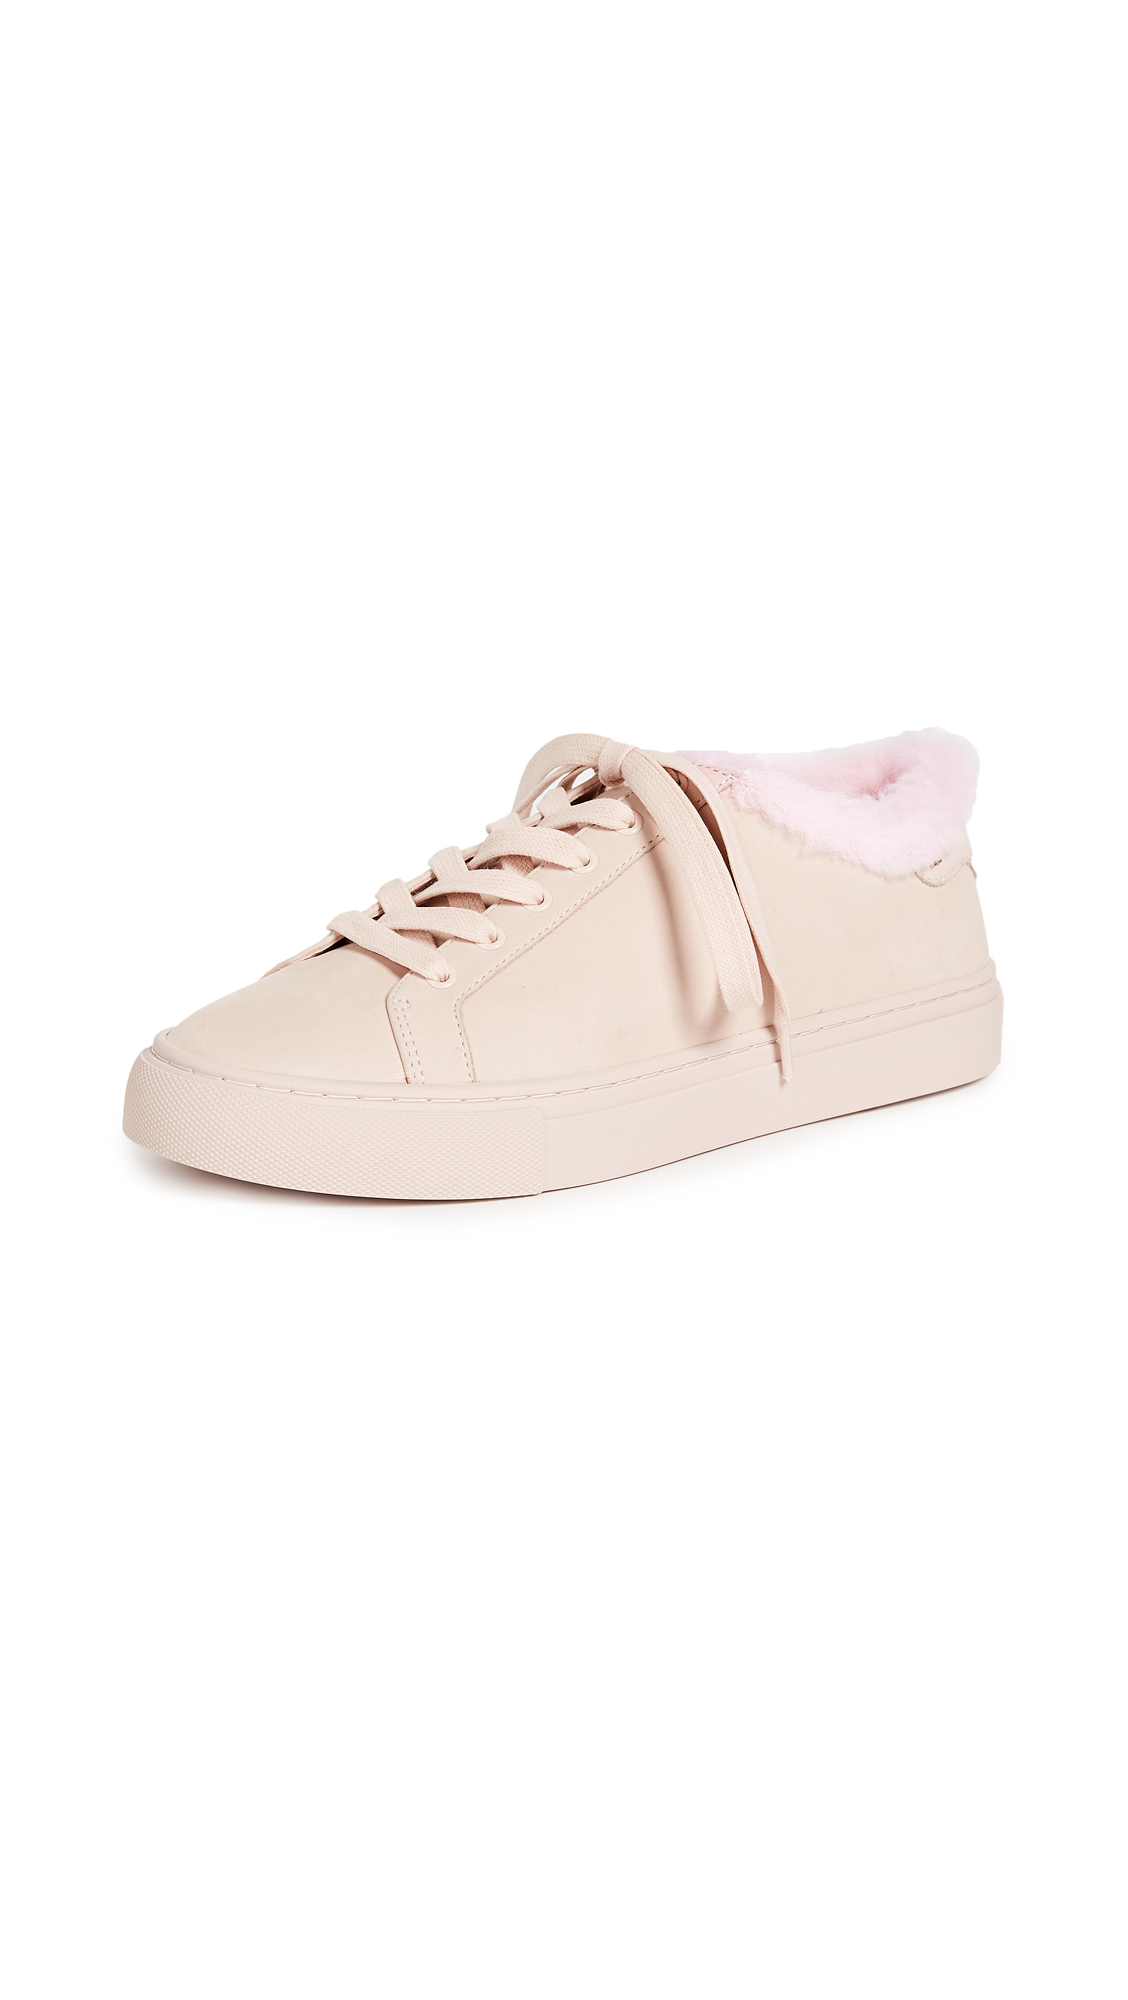 Tory Burch Lawrence Low Top Sneakers - Shell Pink